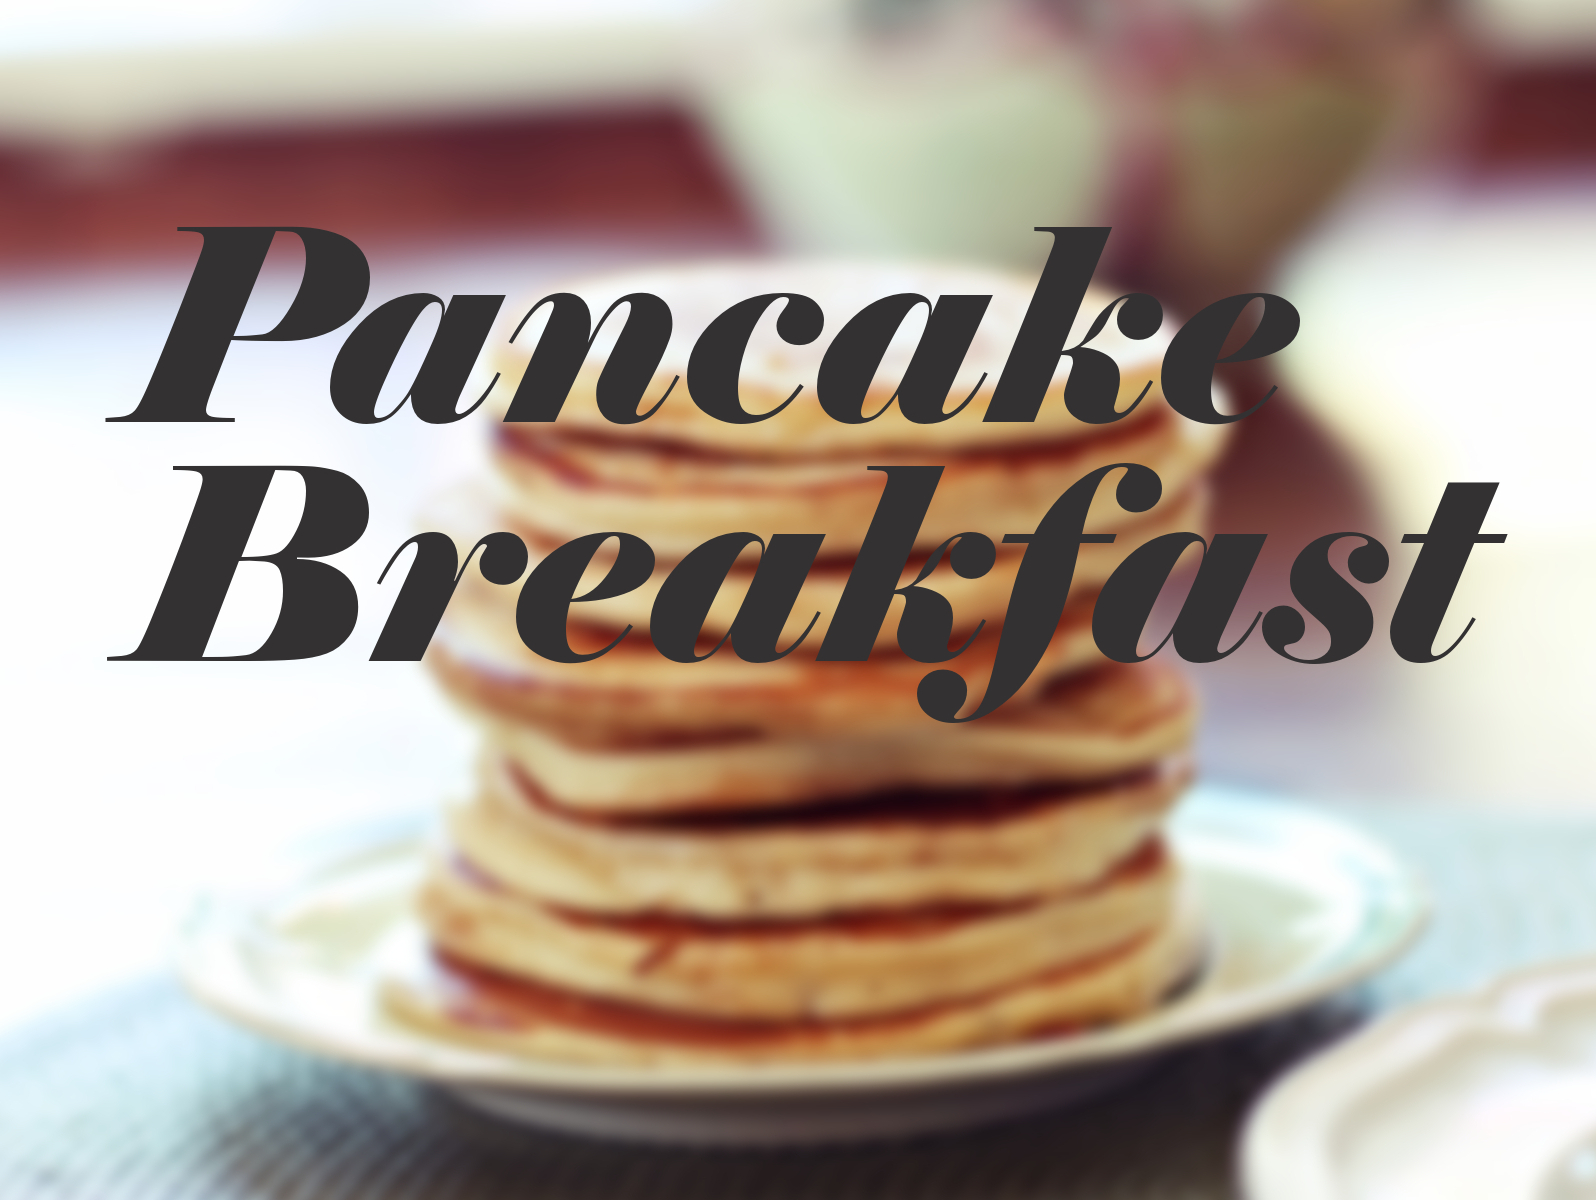 Pancake Breakfast Benefiting Insight Counseling Centers - Clarksville, TN